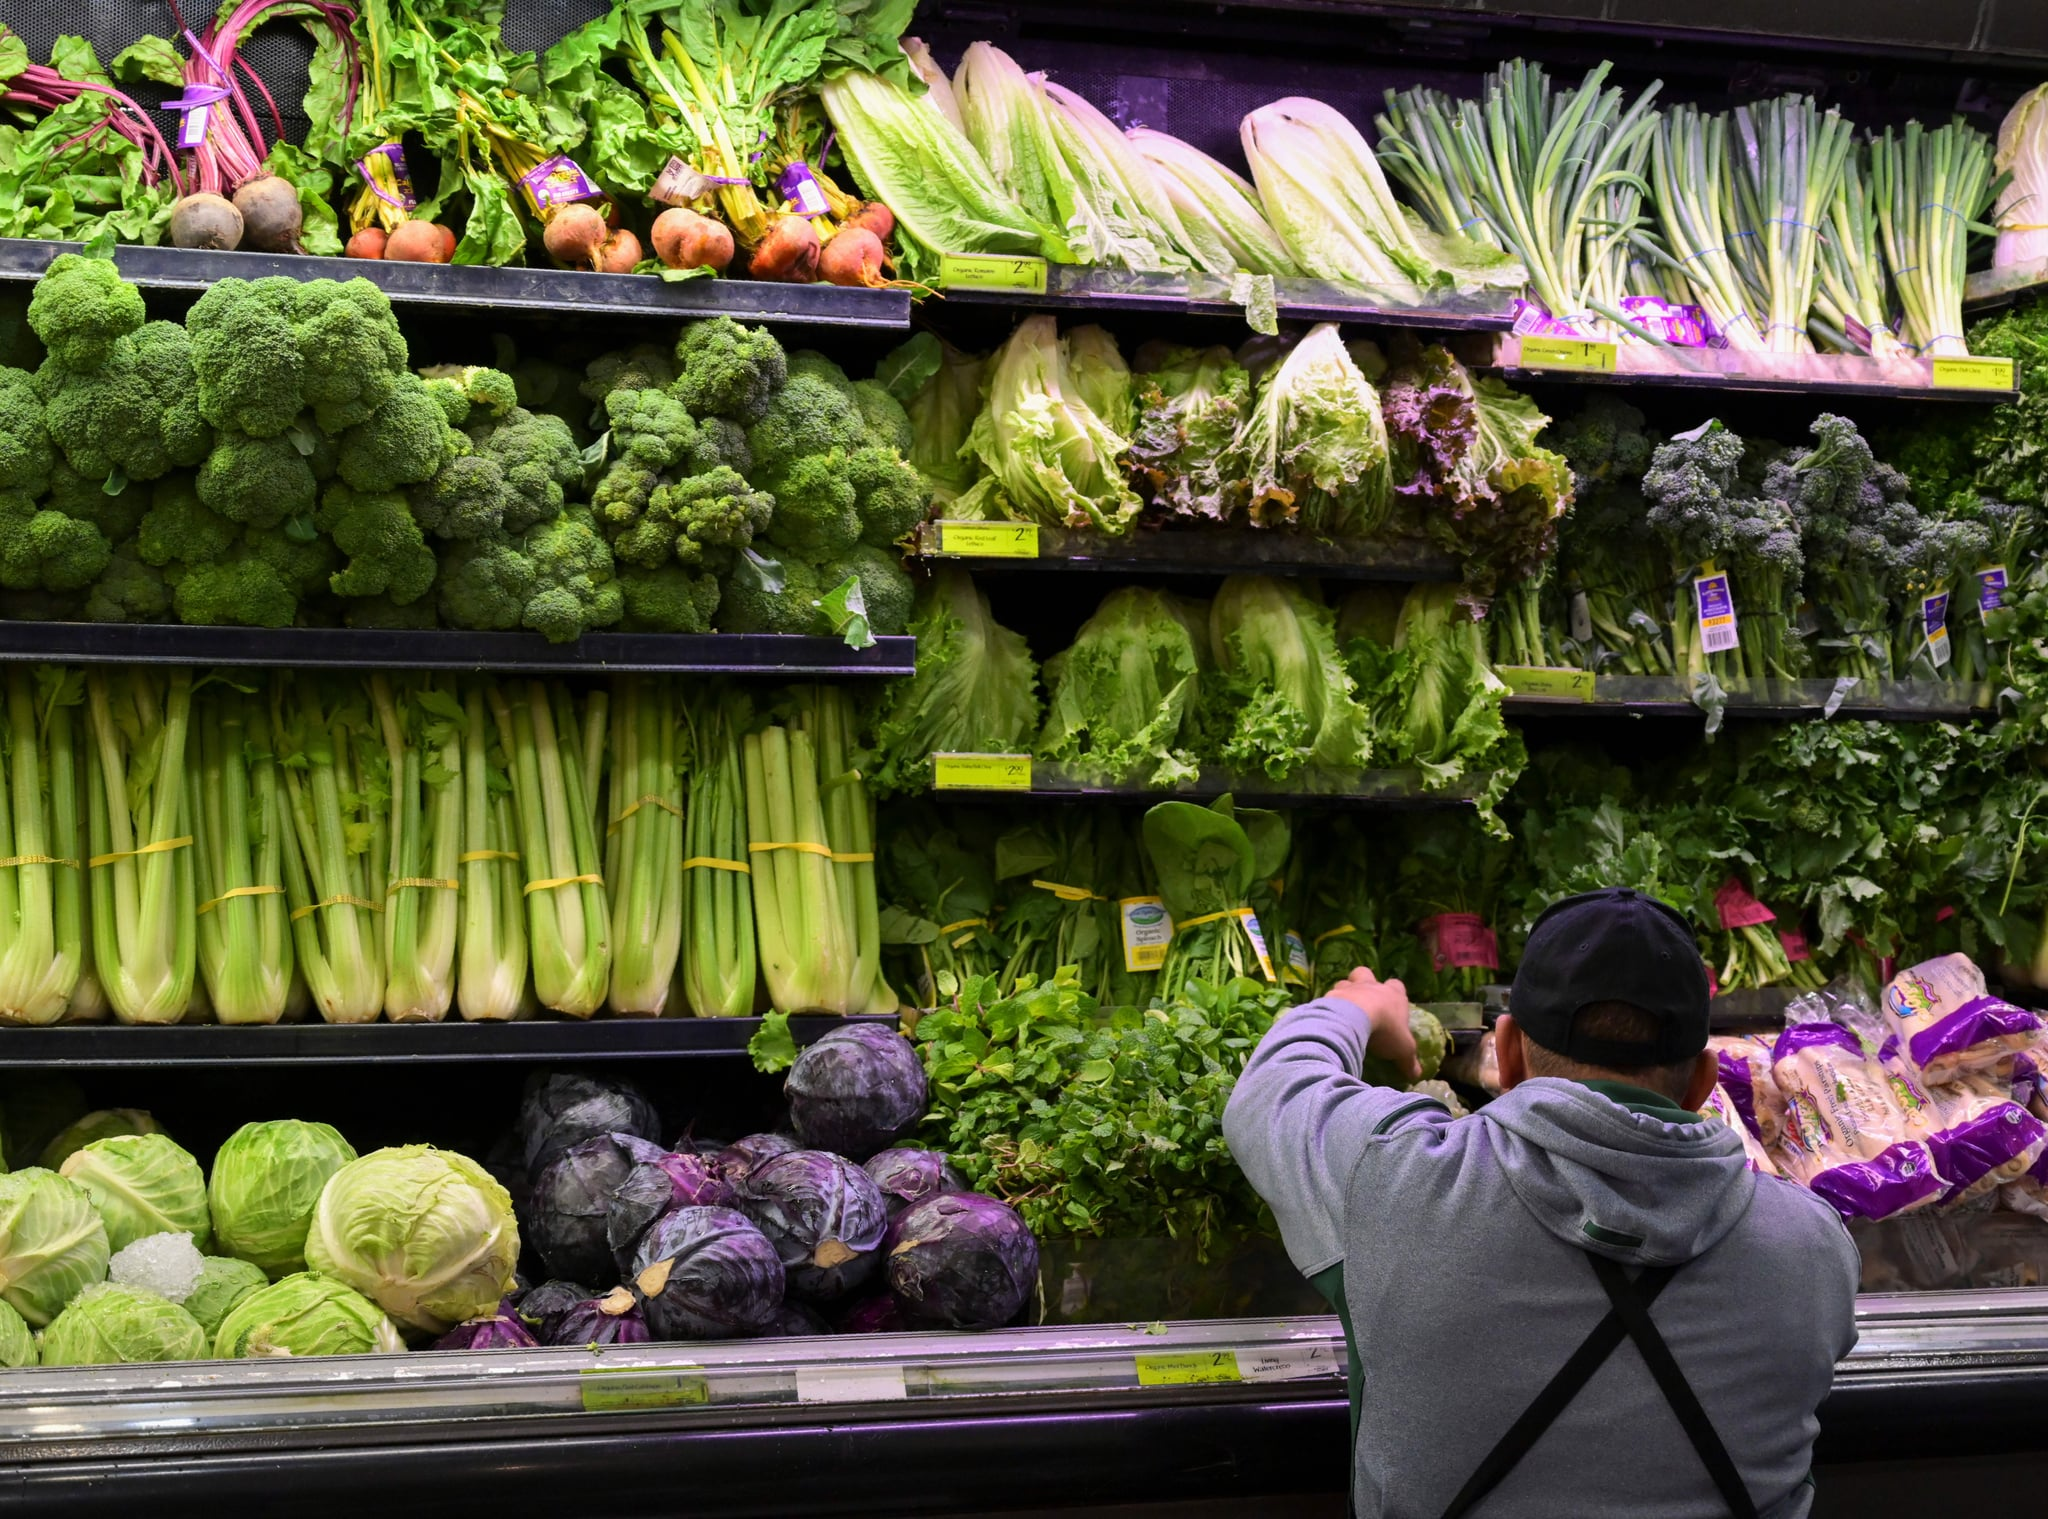 A produce worker stocks shelves near romaine lettuce (top shelf centre) at a supermarket in Washington, DC on November 20, 2018. - US health officials warned consumers not to eat any romaine lettuce and to throw away any they might have in their homes, citing an outbreak of E. coli poisoning. The Centres for Disease Control and Prevention (CDC) issued the warning against all Romaine lettuce just two days before the Thanksgiving holiday, when American families gather and feast together. (Photo by Andrew CABALLERO-REYNOLDS / AFP)        (Photo credit should read ANDREW CABALLERO-REYNOLDS/AFP/Getty Images)